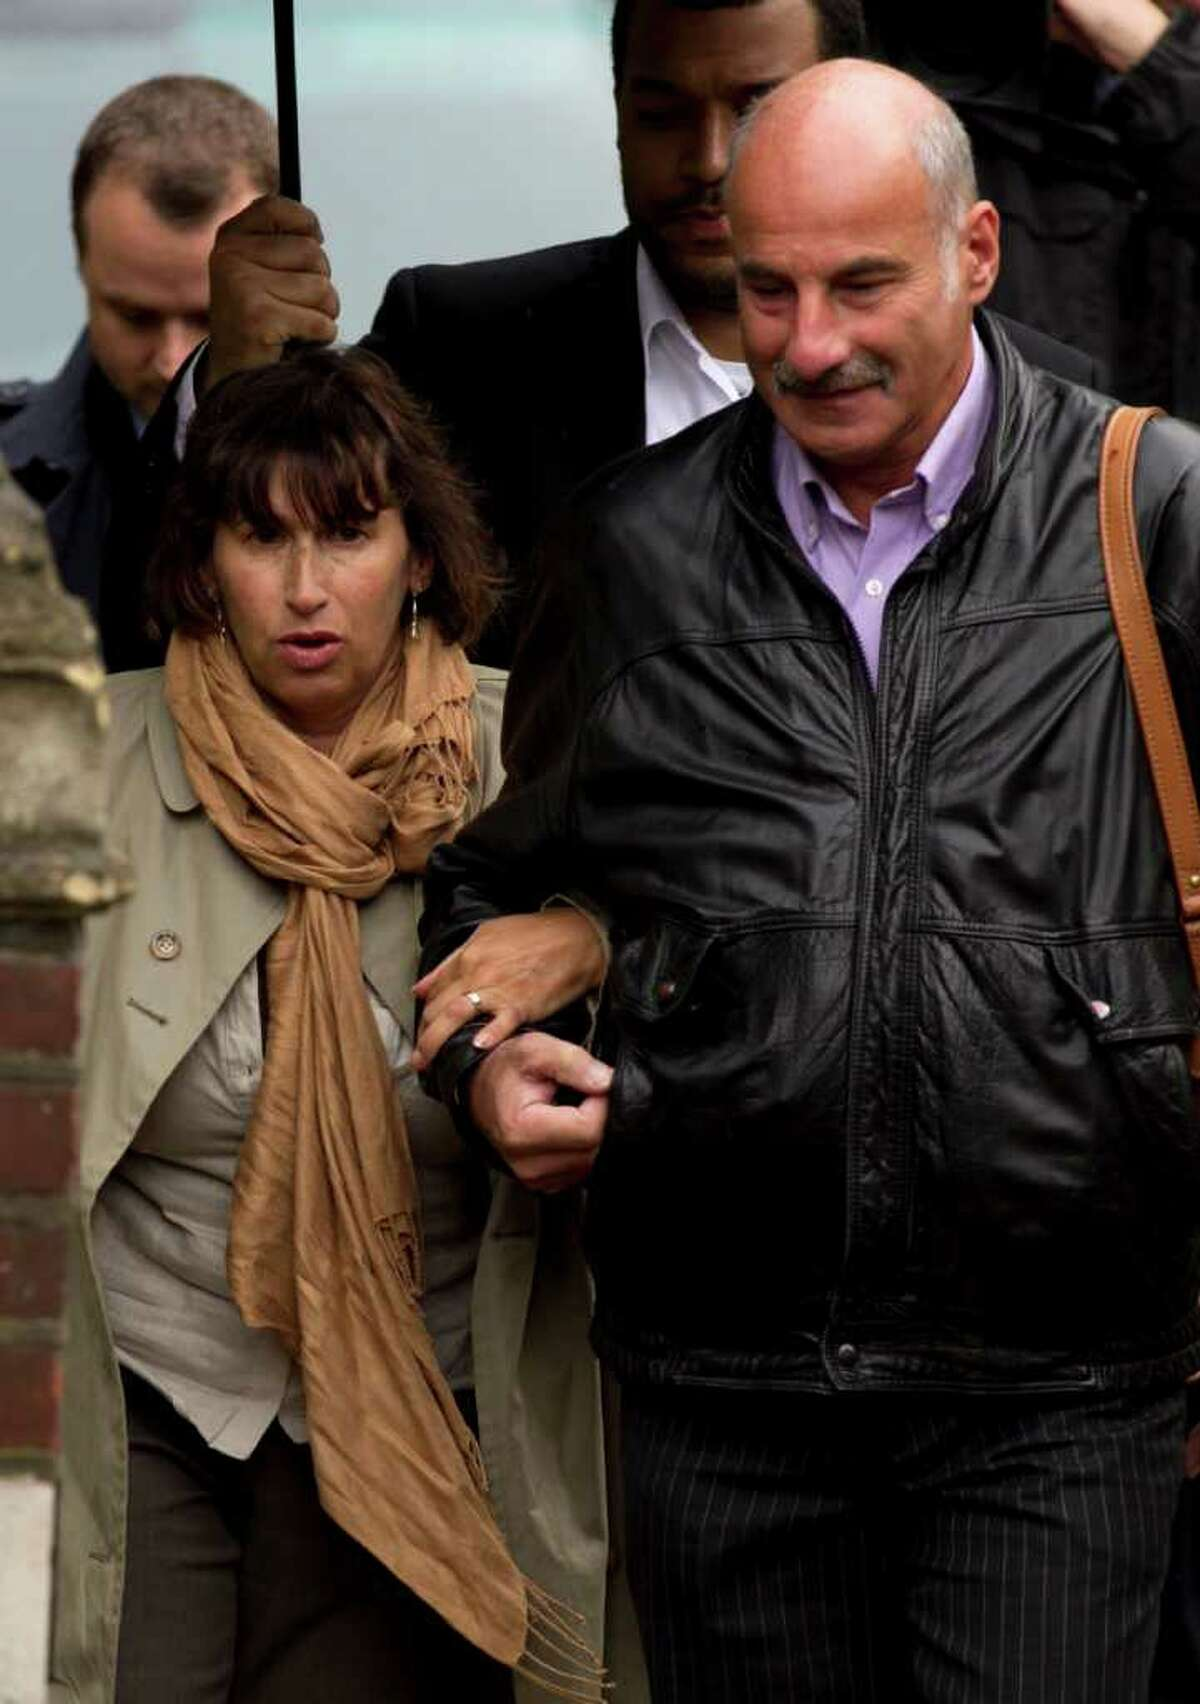 Amy Winehouse's mother Janis, left, arrives at St Pancras Coroner's Court for a hearing into the singer's death in London, Wednesday, Oct. 26, 2011. A British coroner will hear about the final hours of Amy Winehouse's life at the inquest into the soul diva's death. The singer, who had fought drug and alcohol problems for years, was found dead in bed at her London home on July 23 at age 27. (AP Photo/Matt Dunham)